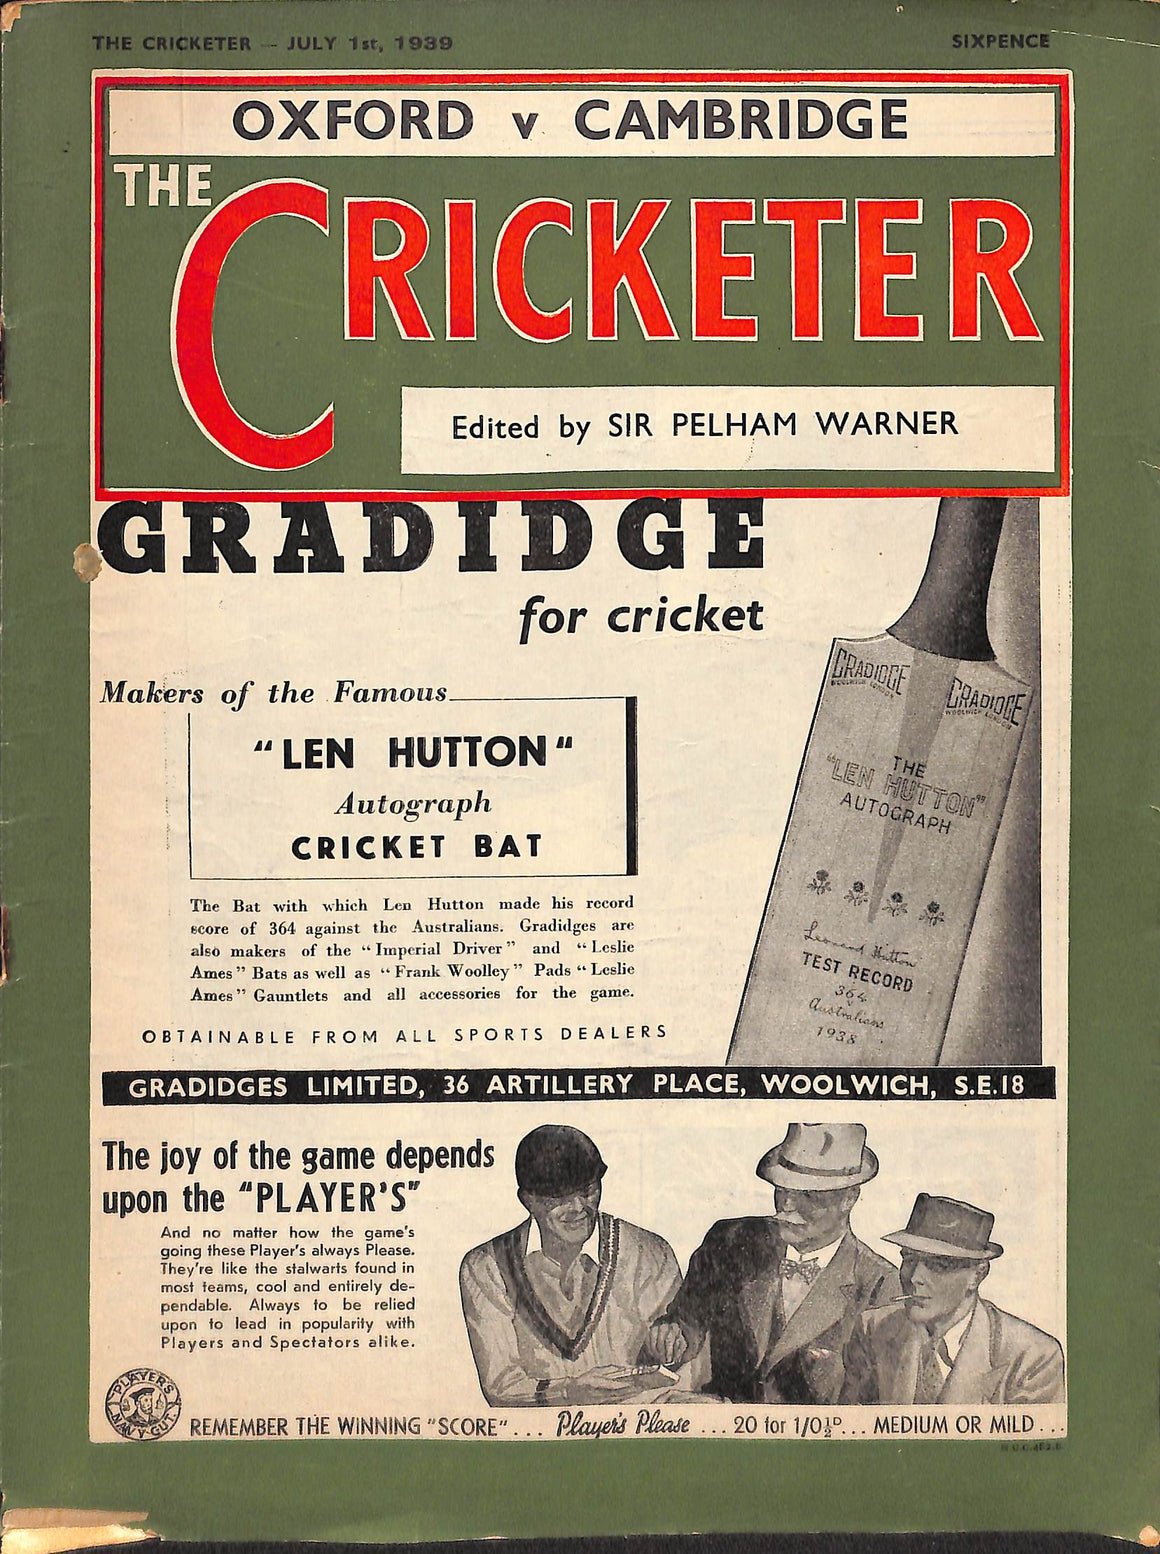 The Cricketer - July 1st, 1939